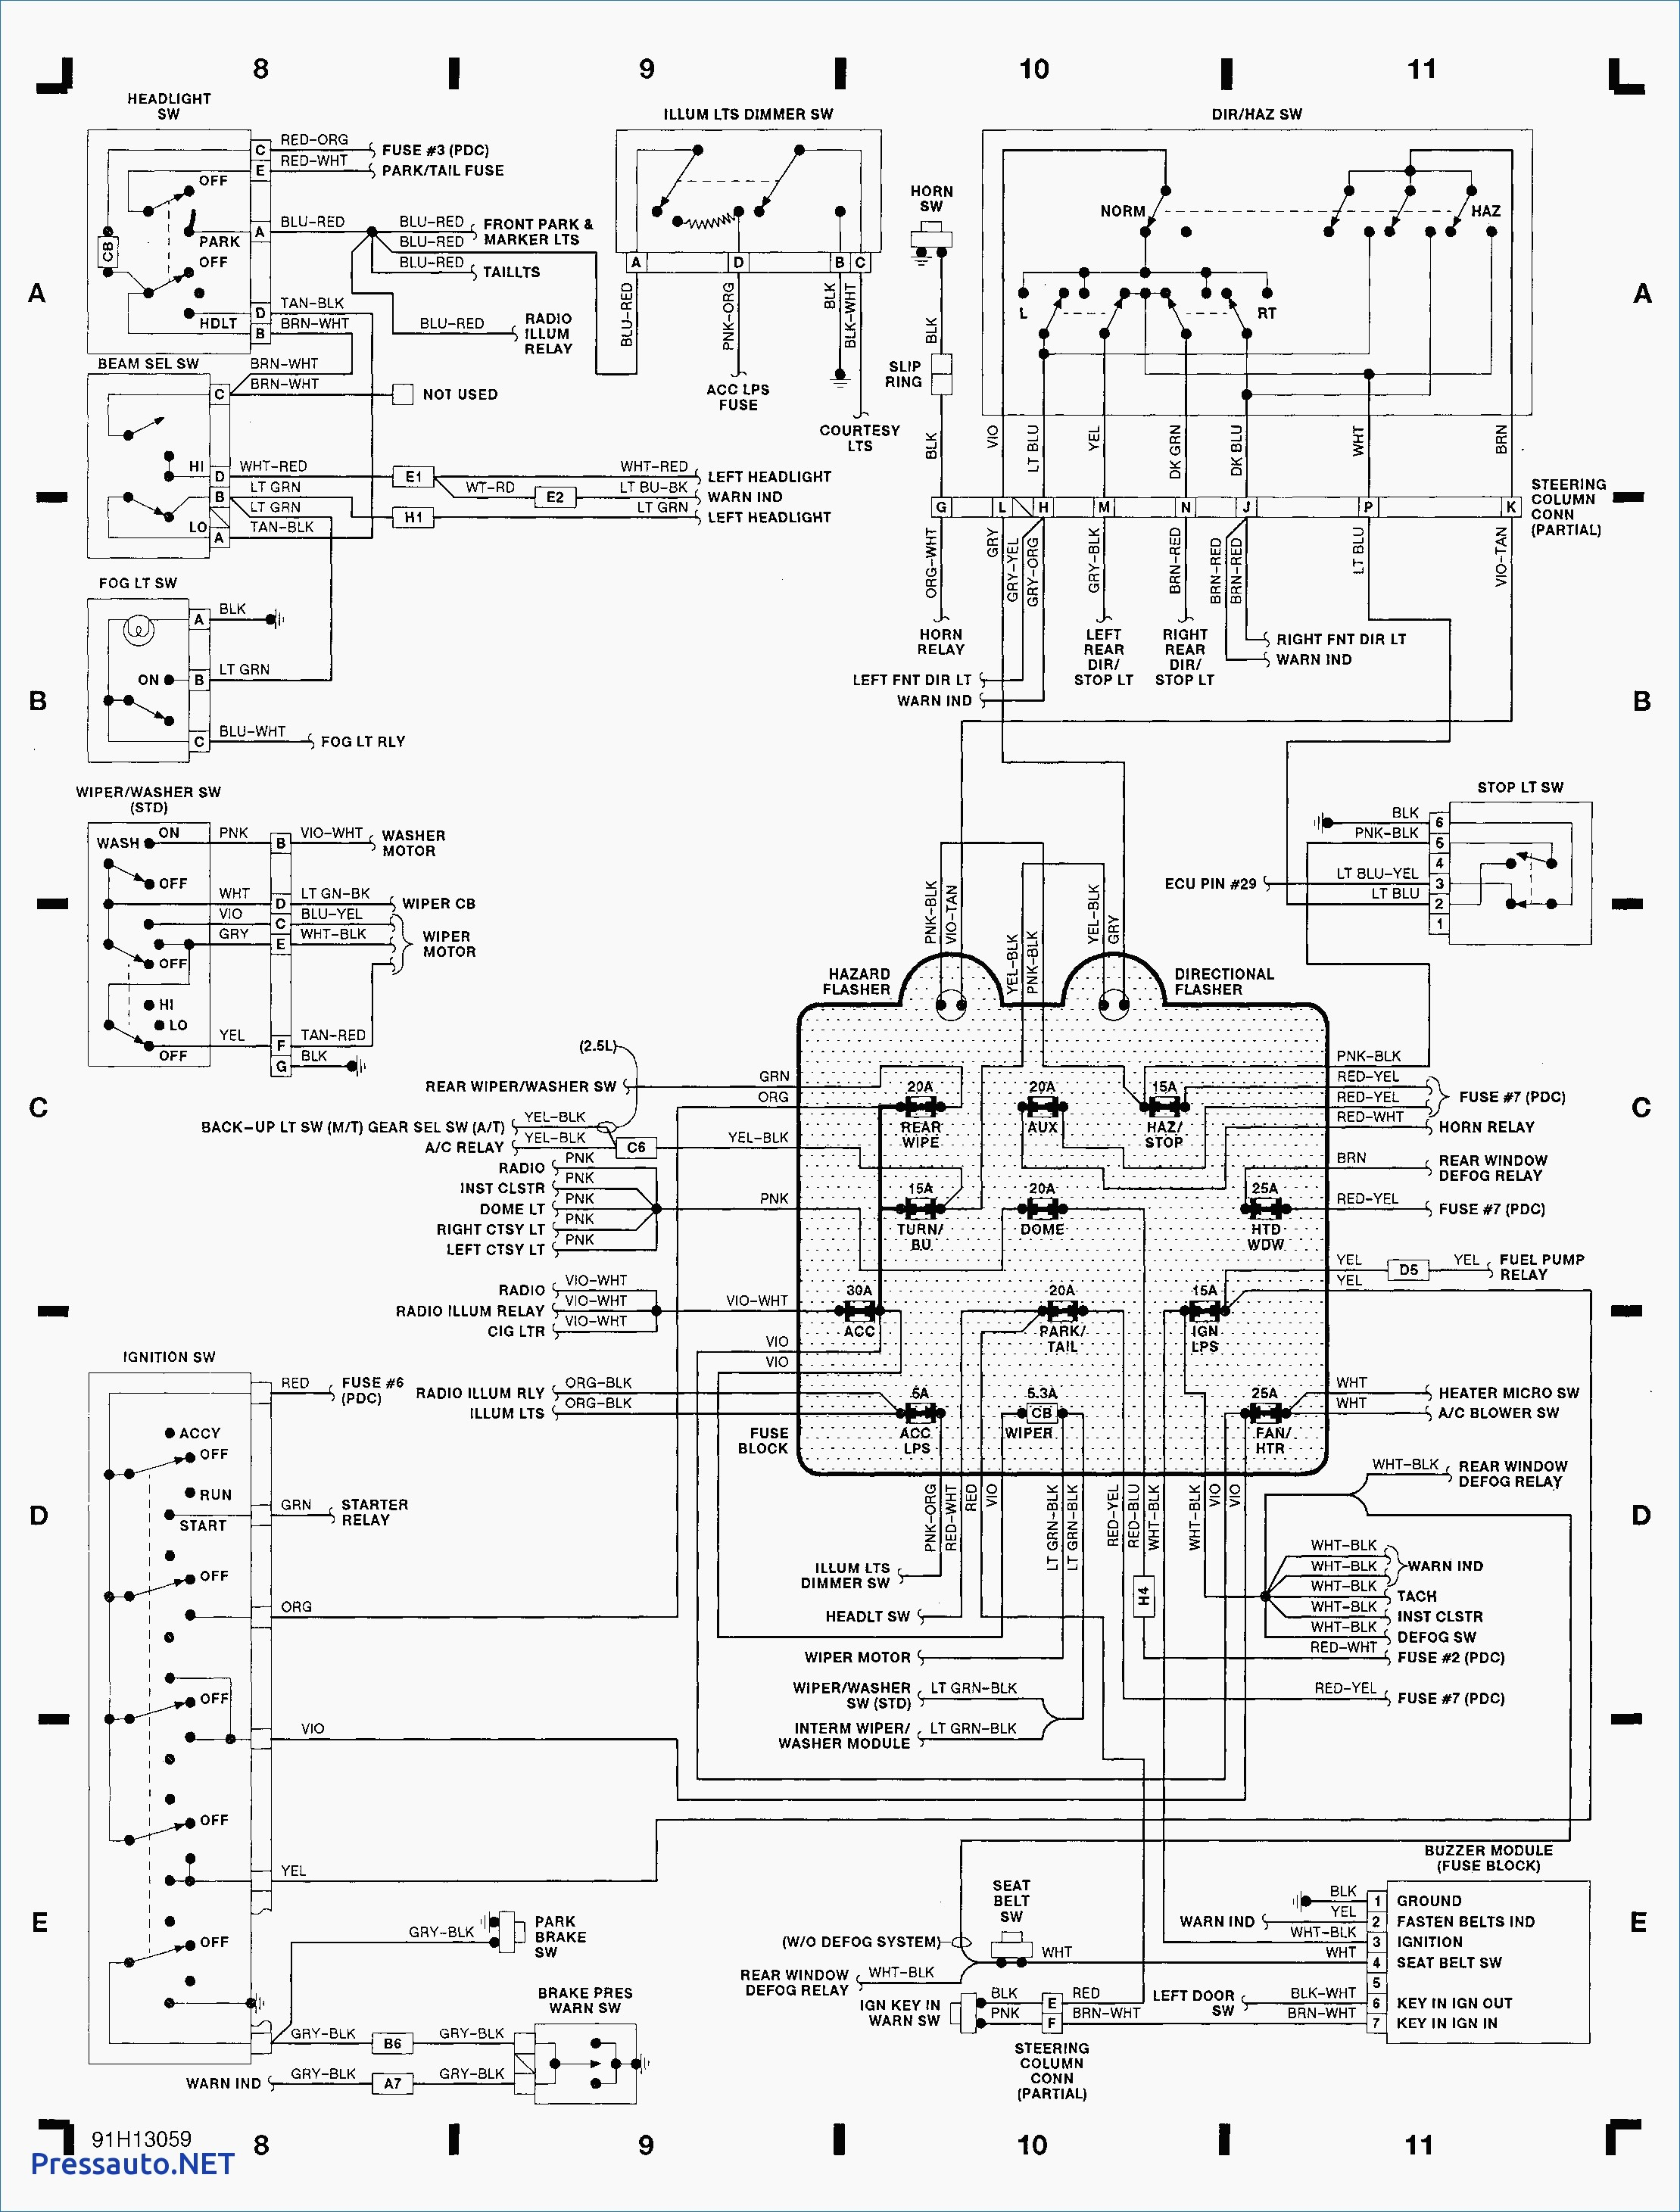 2003 Jeep Wrangler Engine Wiring Harness | Wiring Diagram Jeep Yj Wiring Harness Diagram on 1987 jeep yj wiring diagram, jeep jk wiring-diagram, 89 jeep cherokee wiring diagram, 89 jeep yj wiring diagram, jeep wrangler wiring harness, jeep yj alternator wiring diagram, jeep grand cherokee electrical diagram, 1989 jeep yj wiring diagram, ford mustang wiring harness diagram, toyota tacoma wiring harness diagram, 95 jeep wiring harness diagram, 1995 jeep yj wiring diagram, bmw z3 wiring harness diagram, honda odyssey wiring harness diagram, jeep patriot wiring harness diagram, jeep grand cherokee wiring harness diagram, bmw z4 wiring harness diagram, 1991 jeep yj wiring diagram, jeep yj stereo wiring diagram, nissan altima wiring harness diagram,